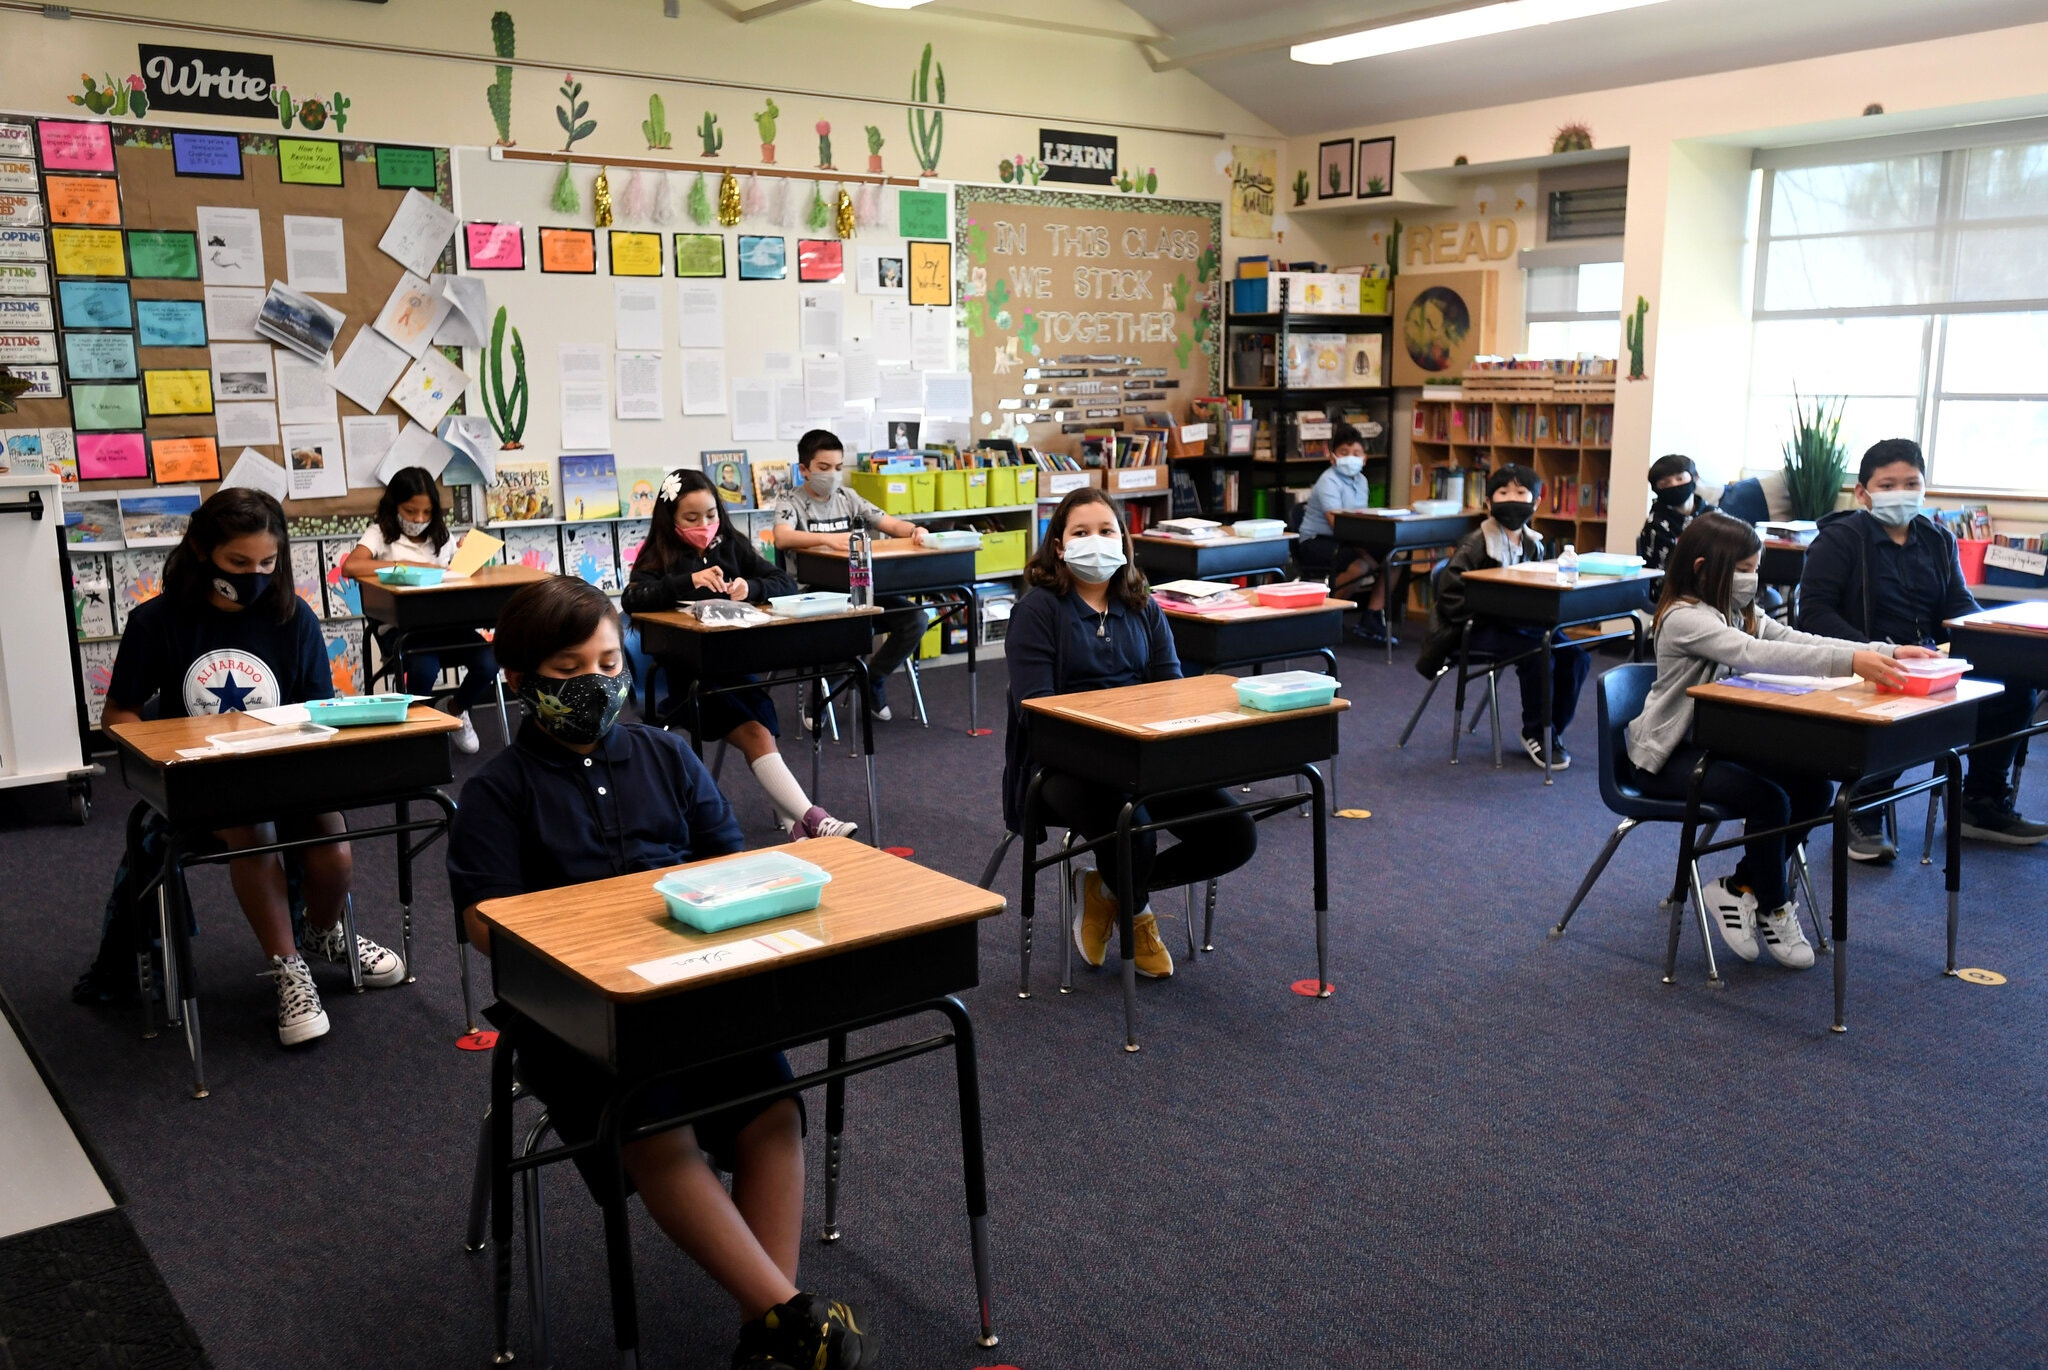 Back to school: How to prepare your kids as schools reopen?